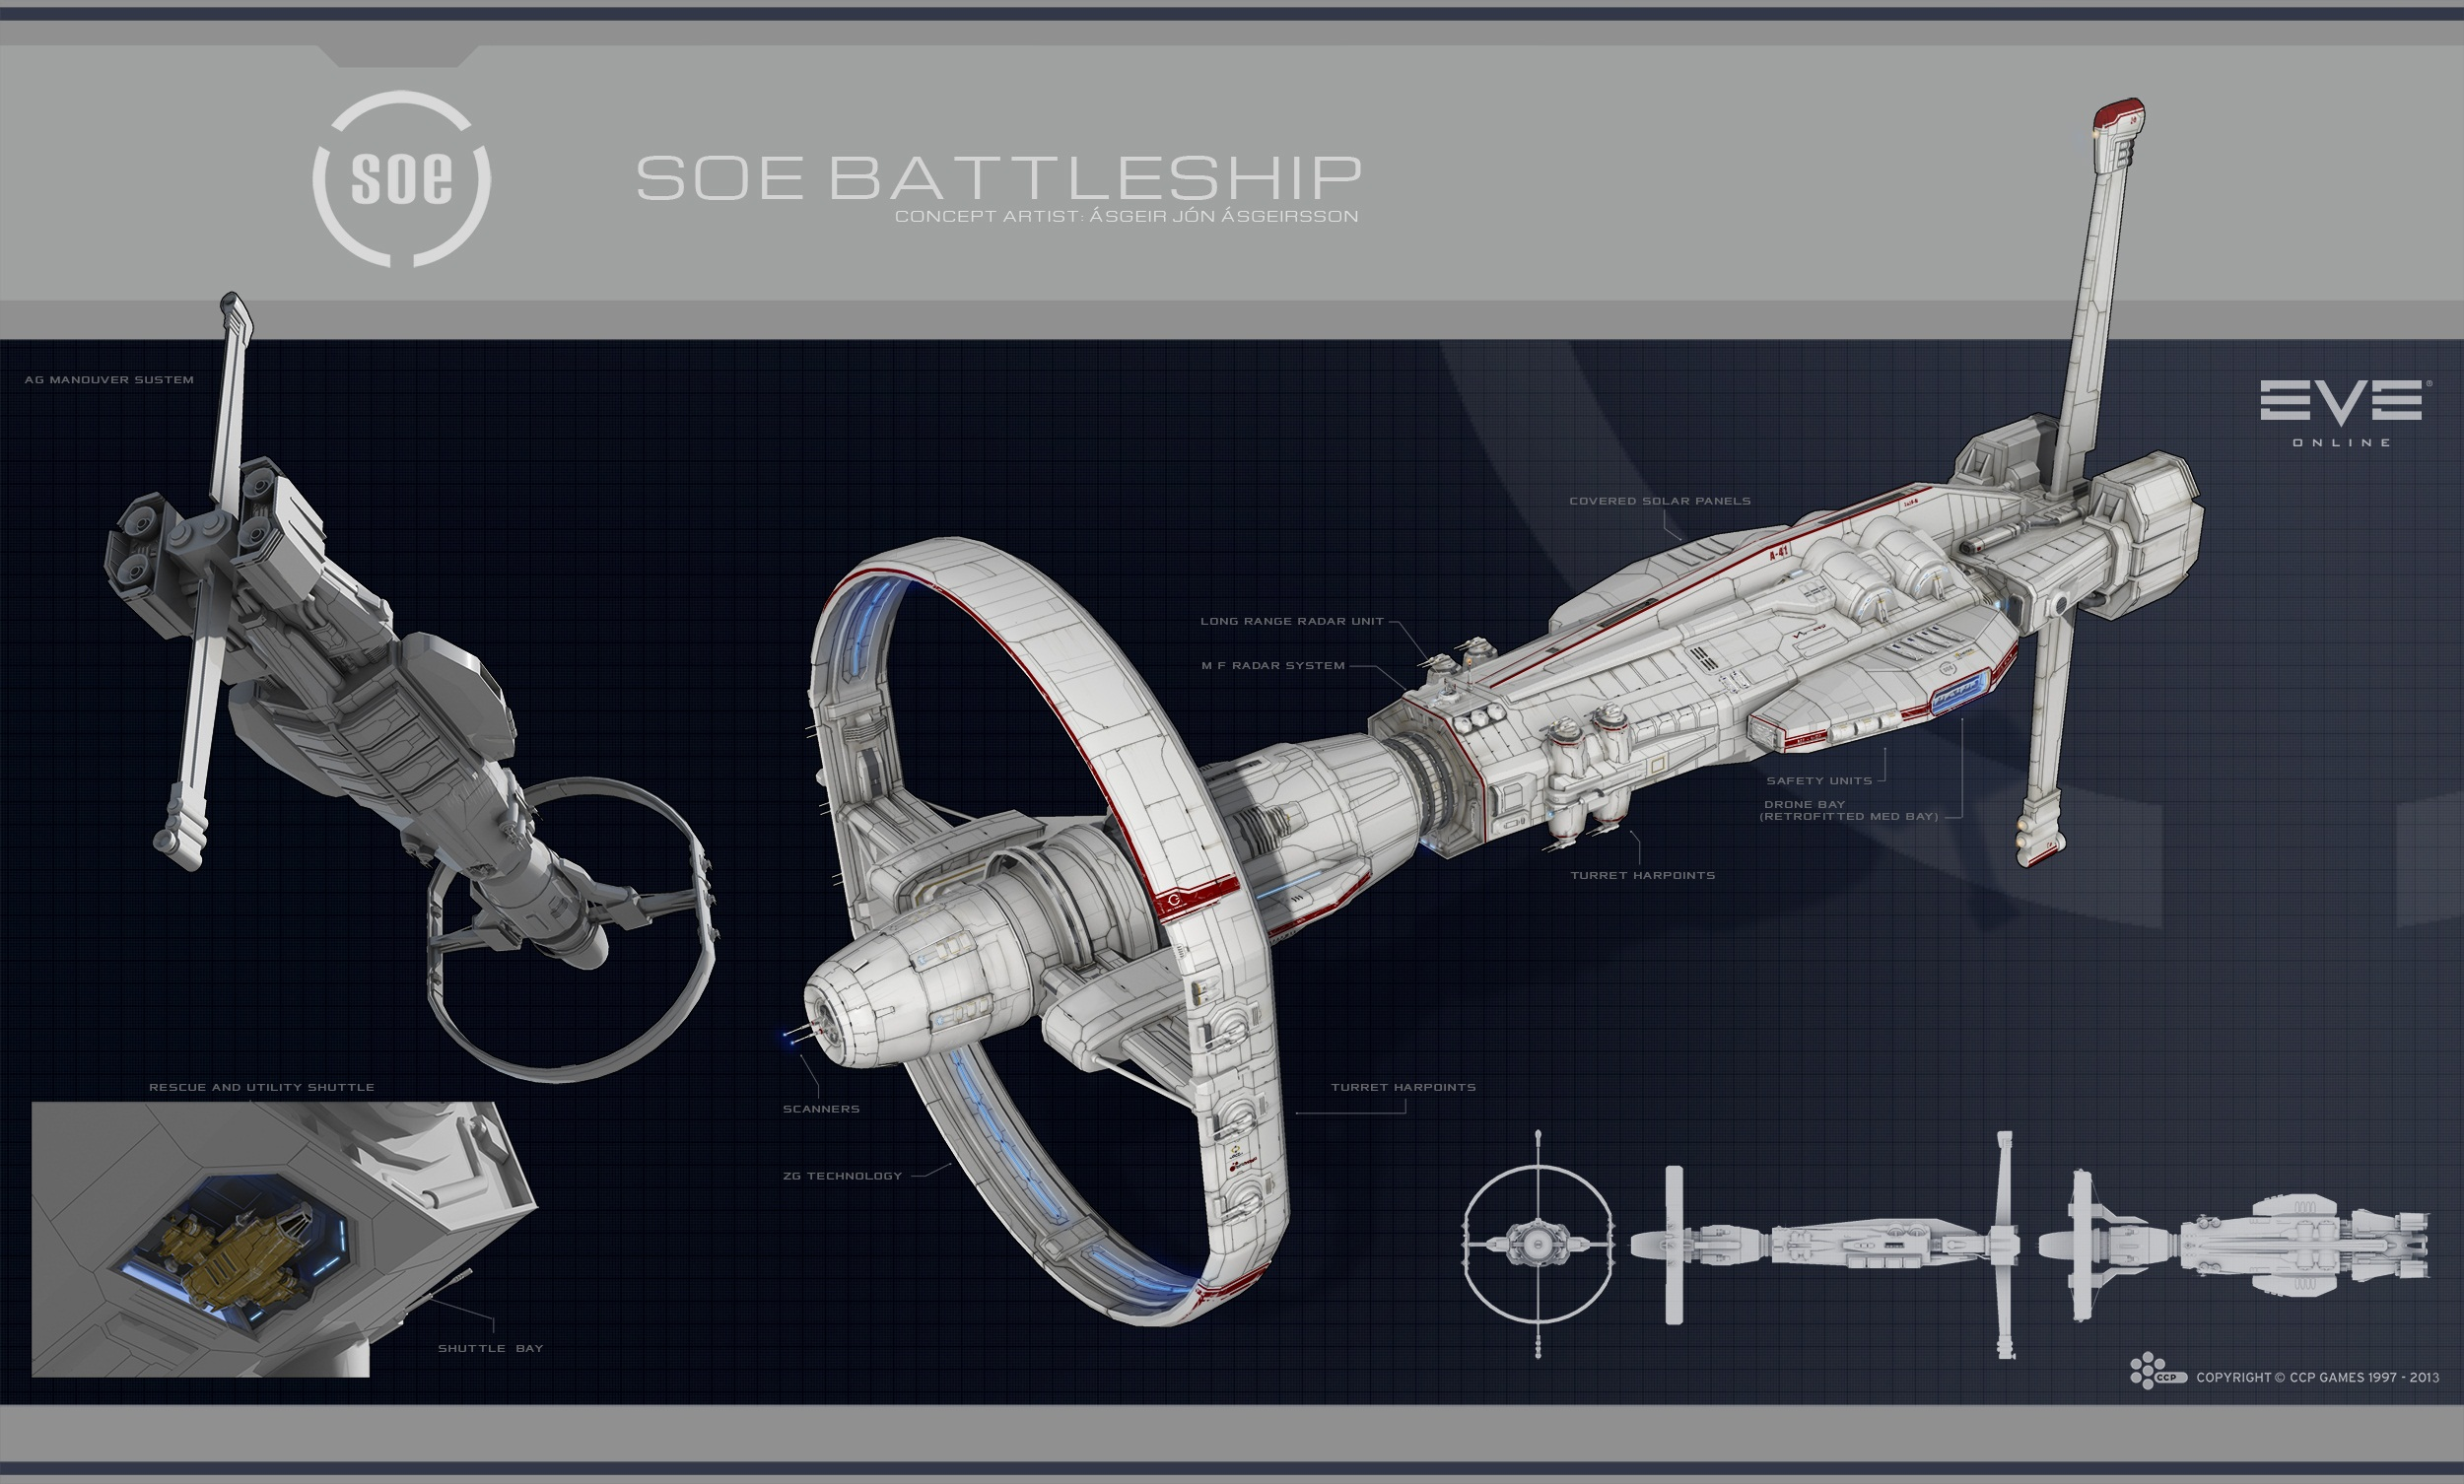 eve drone with Soe Reinforcements And Ui Fine Tuning on Martyrs Memorial Monument Inaugurated In Umm Al Qaiwain furthermore Sat 17 Nov Big Picture Activism For An Economics Of Happines 49595 also Eve Online Ship likewise Soe Reinforcements And Ui Fine Tuning likewise Military Land Drones.